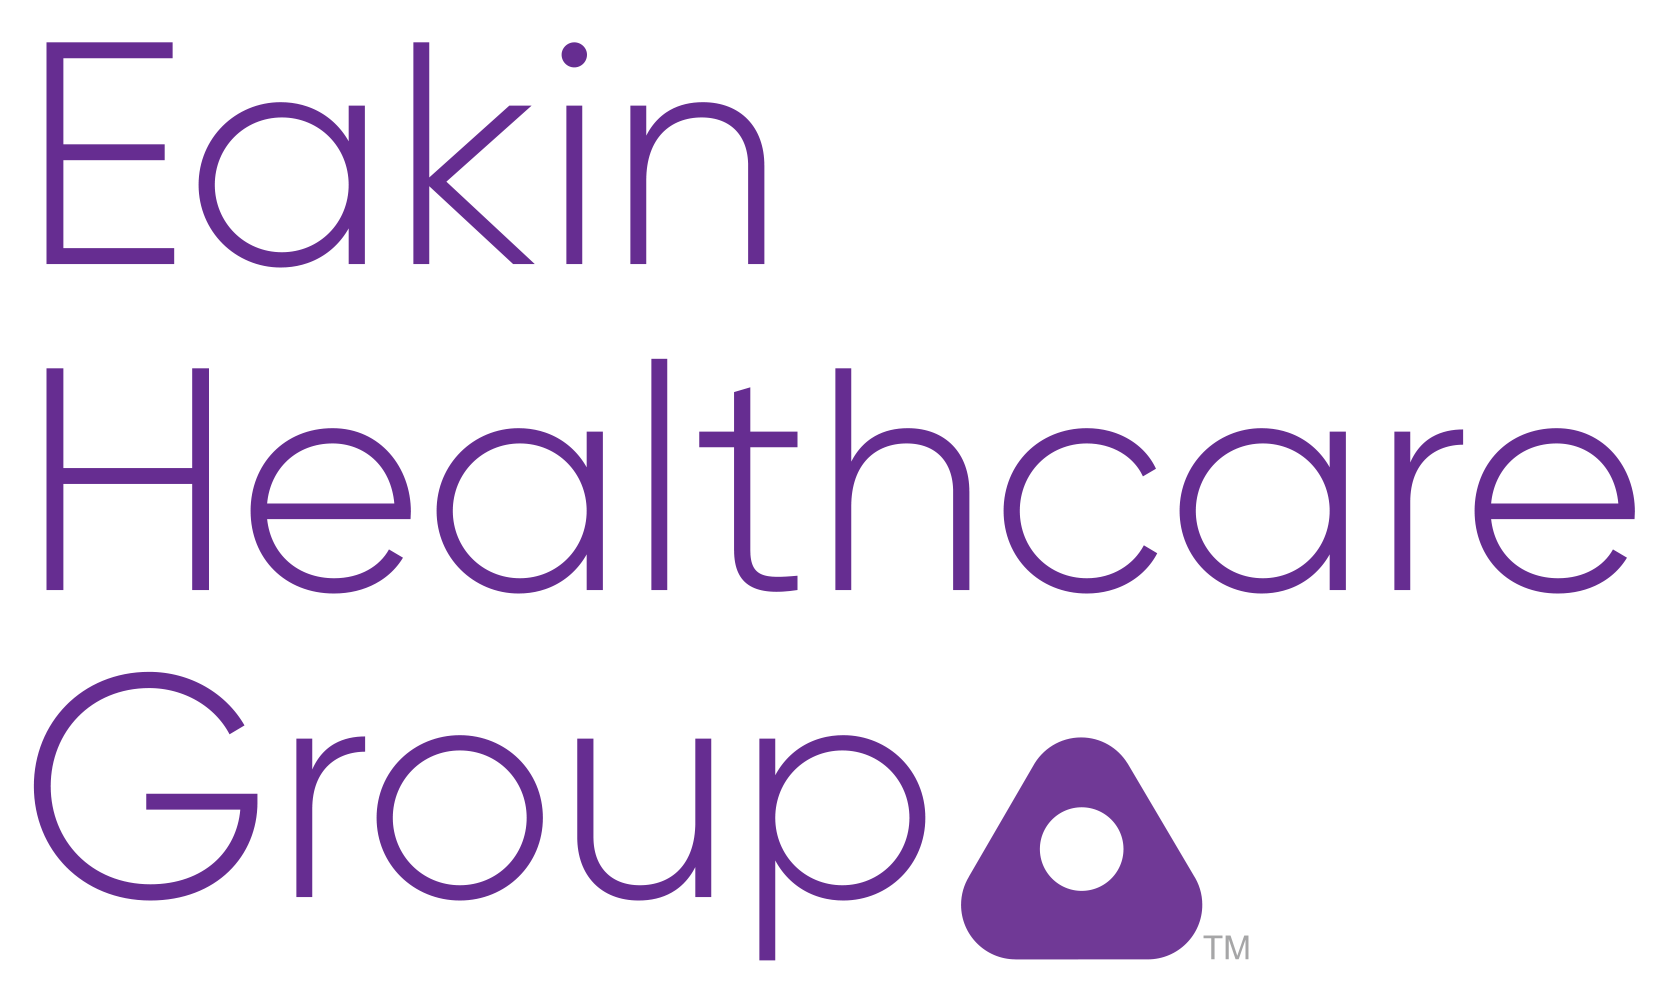 Eakin Healthcare Group Master Logo CMYK (1) Resized.png